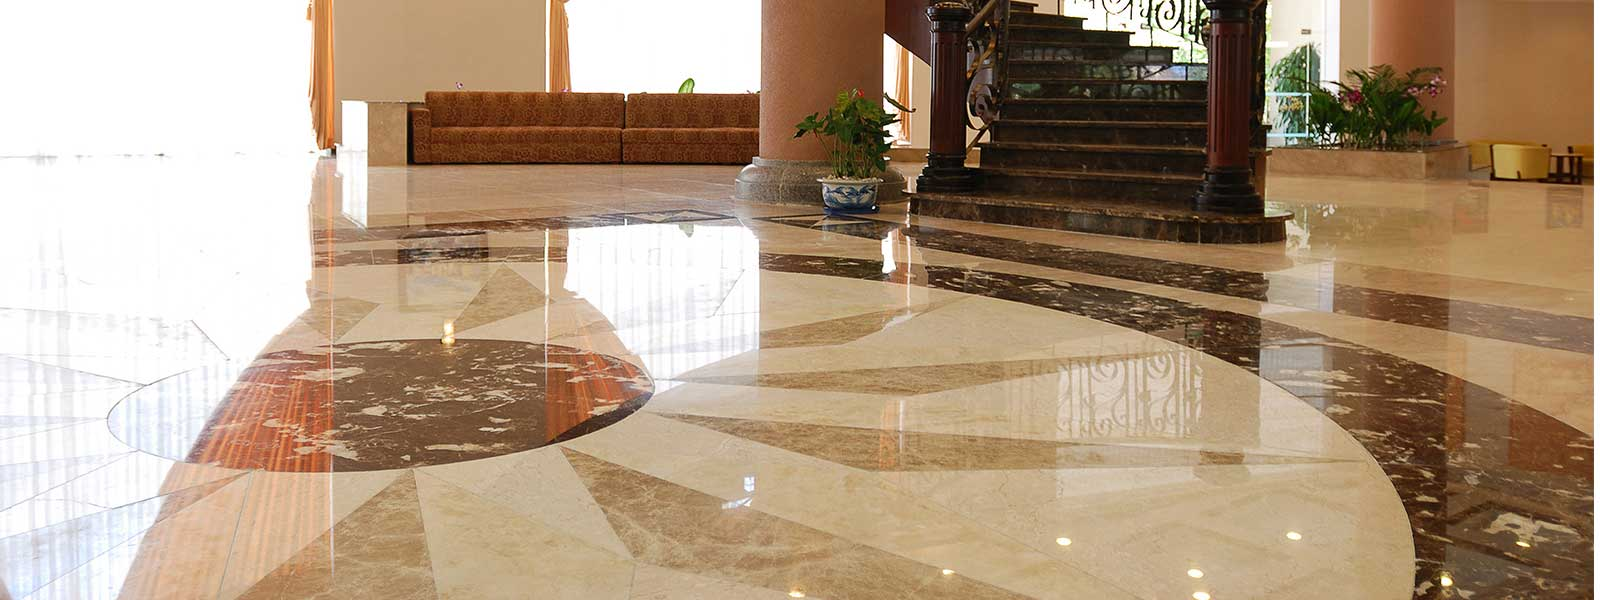 Marble Floor Cleaning and Polishing in Cheshire